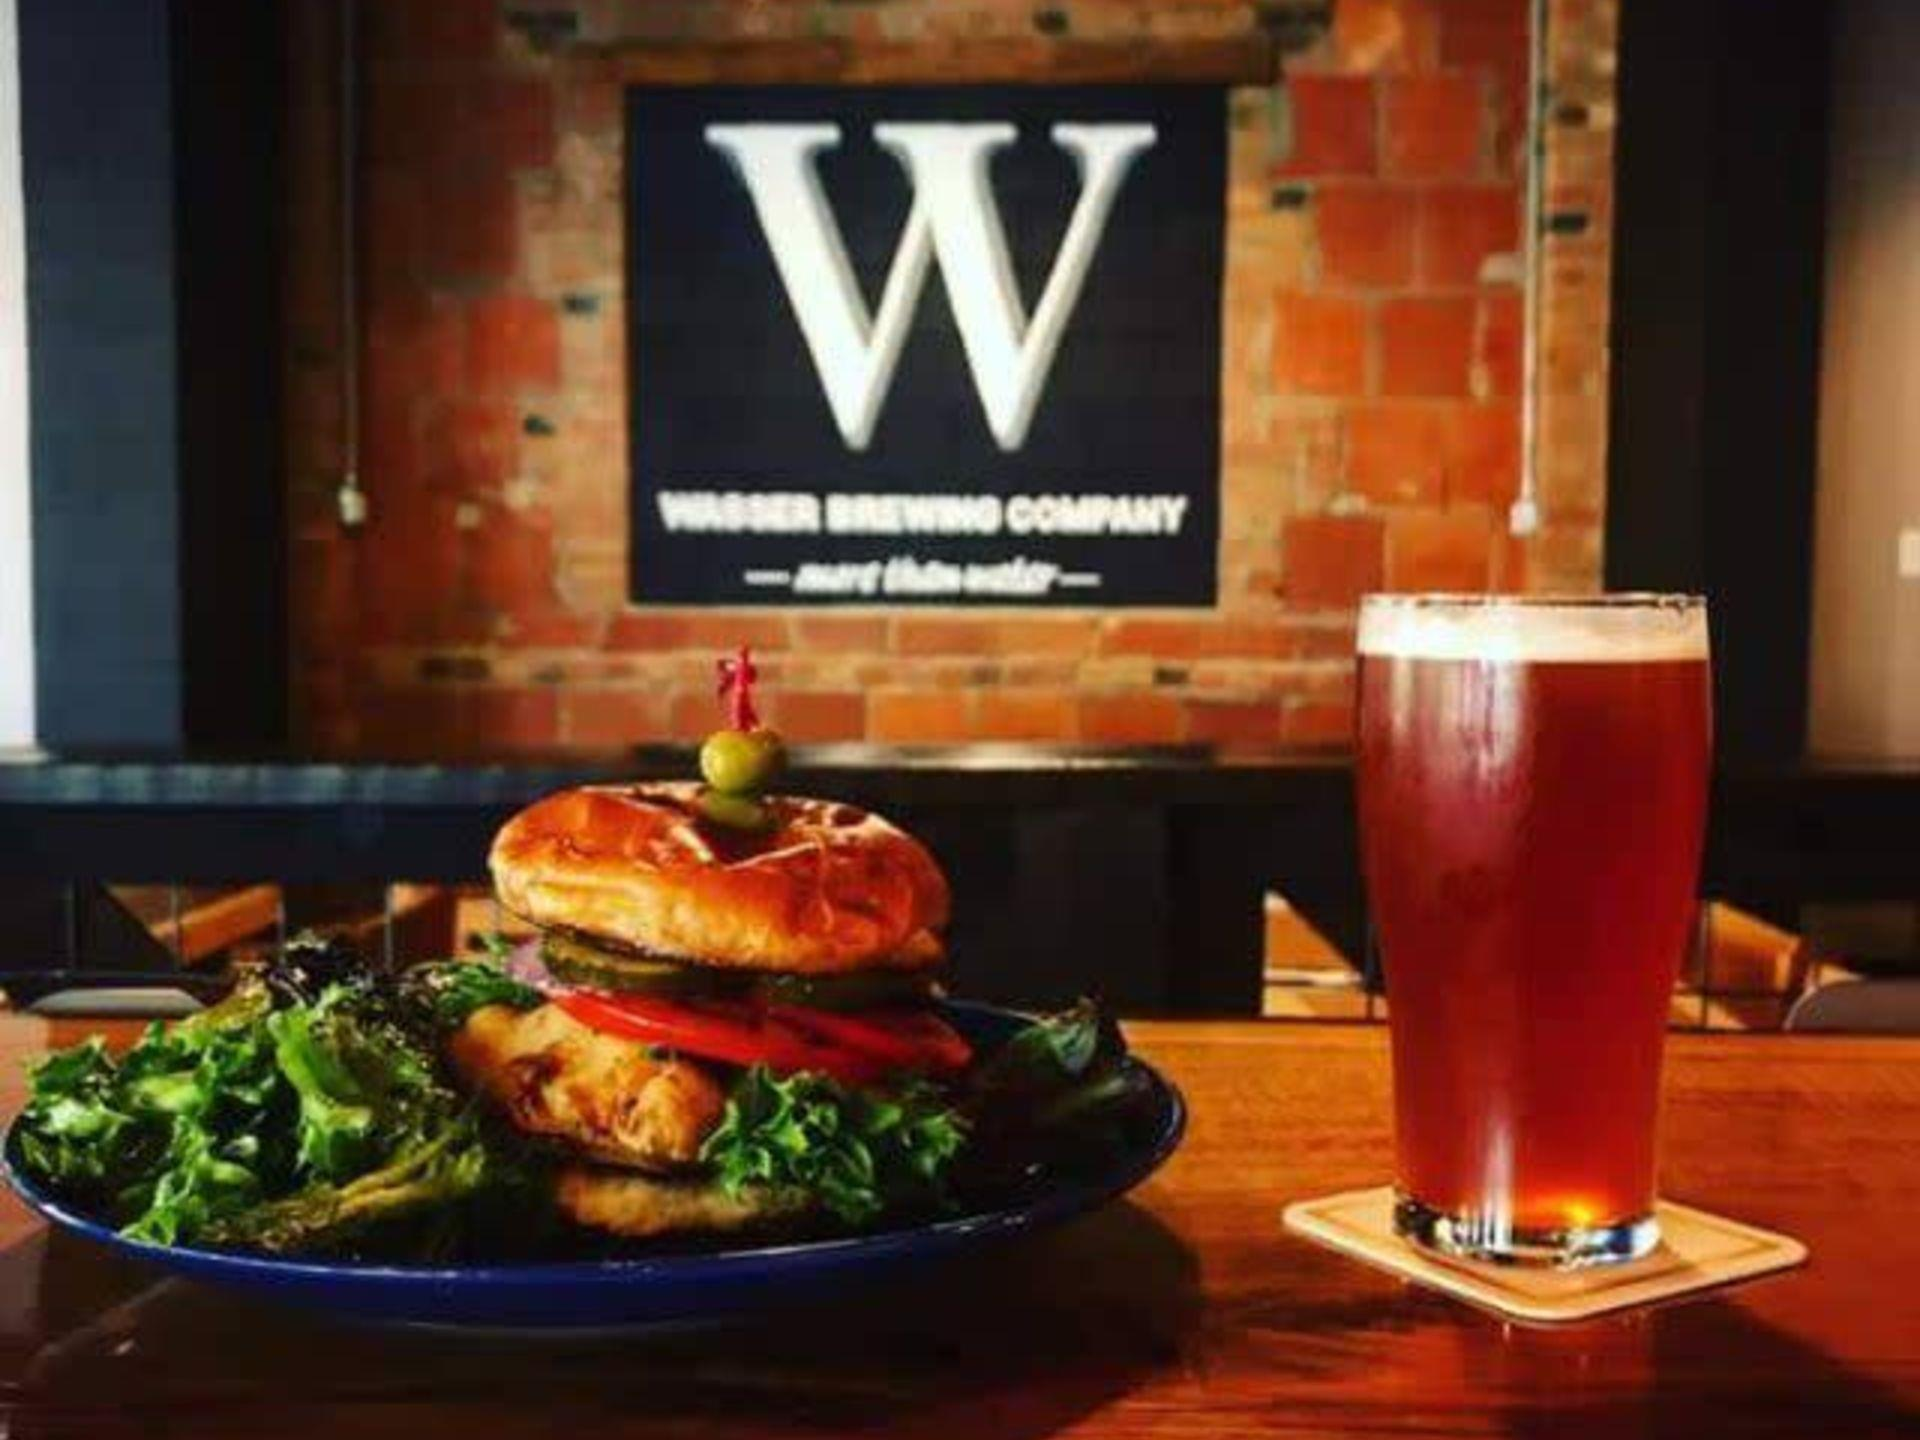 Grilled chicken burger with roasted red peppers, pickles and lettuce with a mixed green salad and a pint of beer